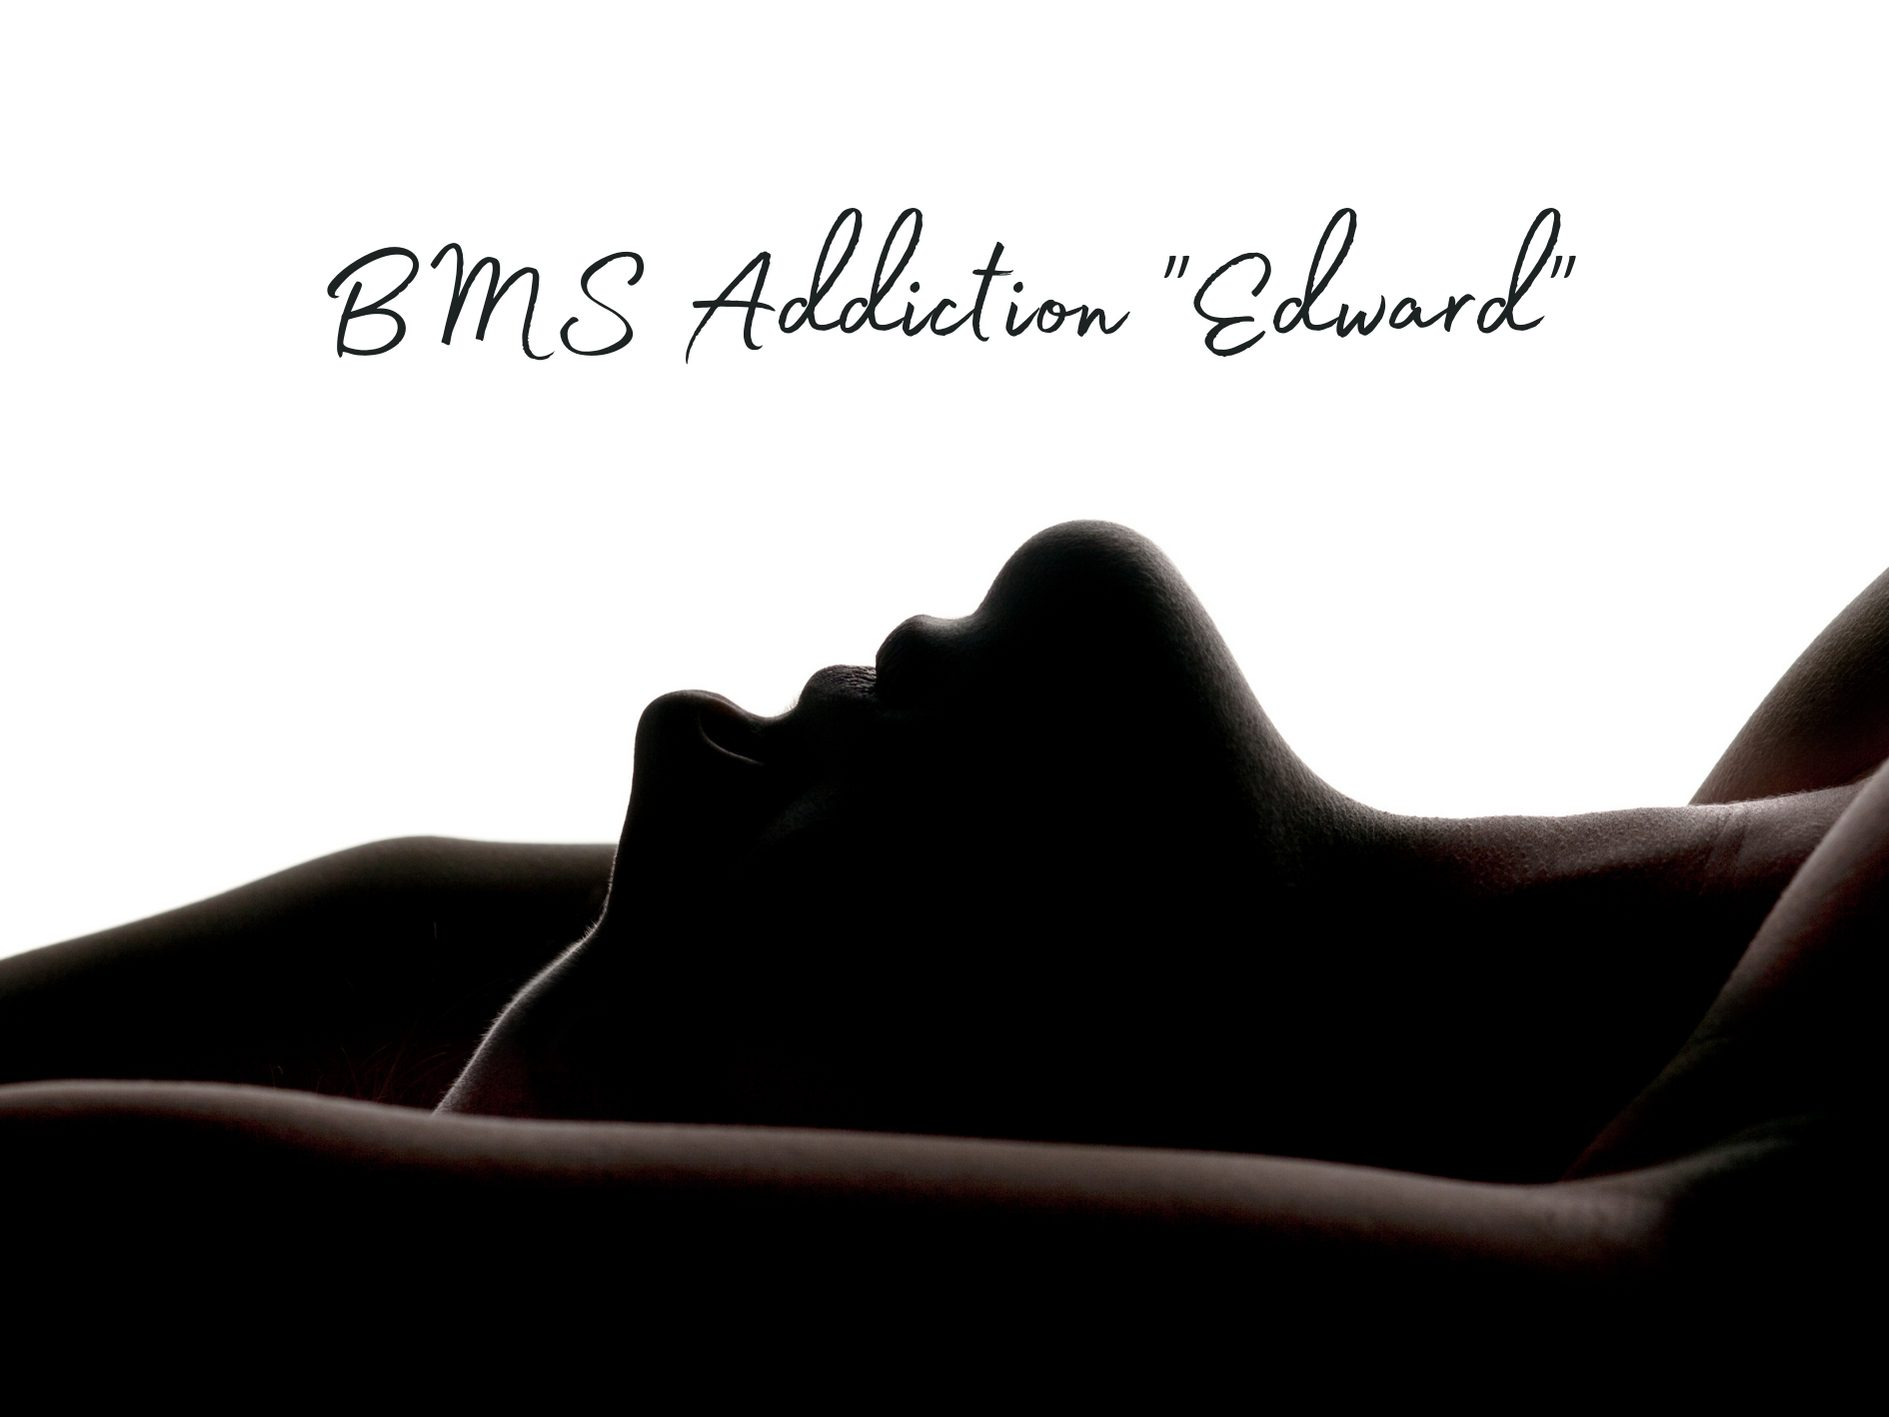 [Toy Review] BMS Addiction Edward Realistic Dildo